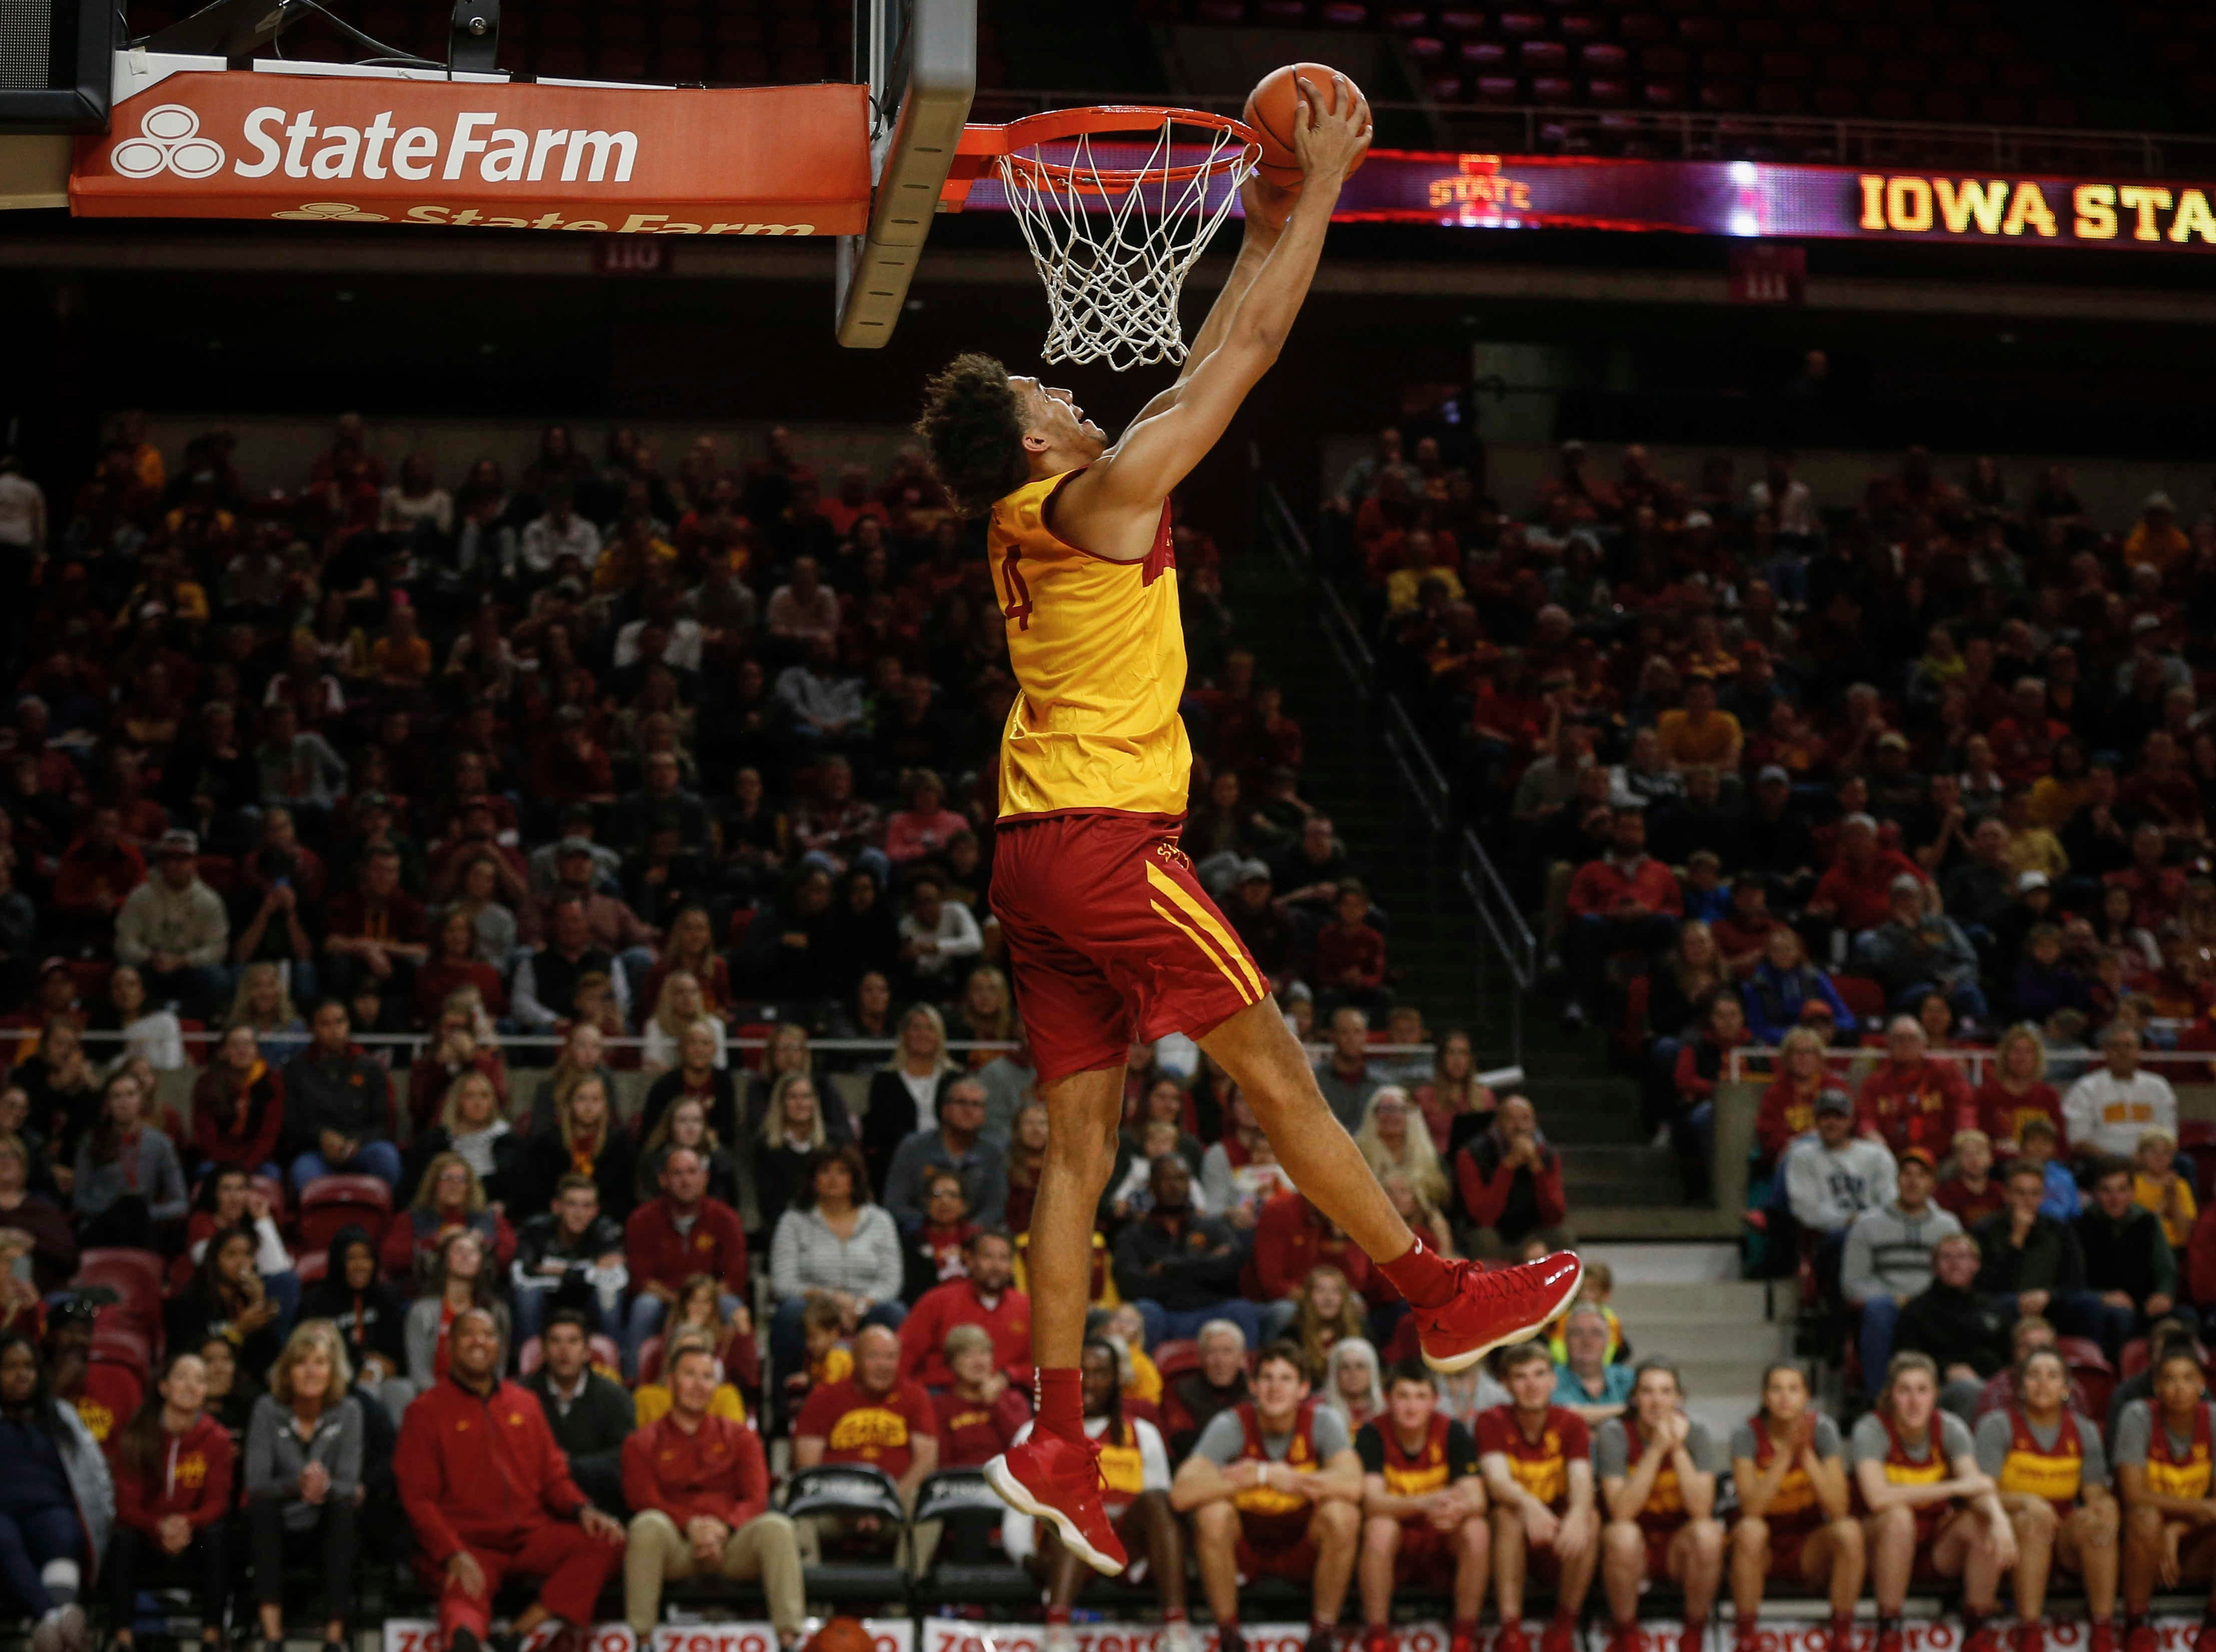 George Conditt IV dunks the ball during warmups during Hilton Madness at Hilton Coliseum in Ames on Friday, Oct. 12, 2018.